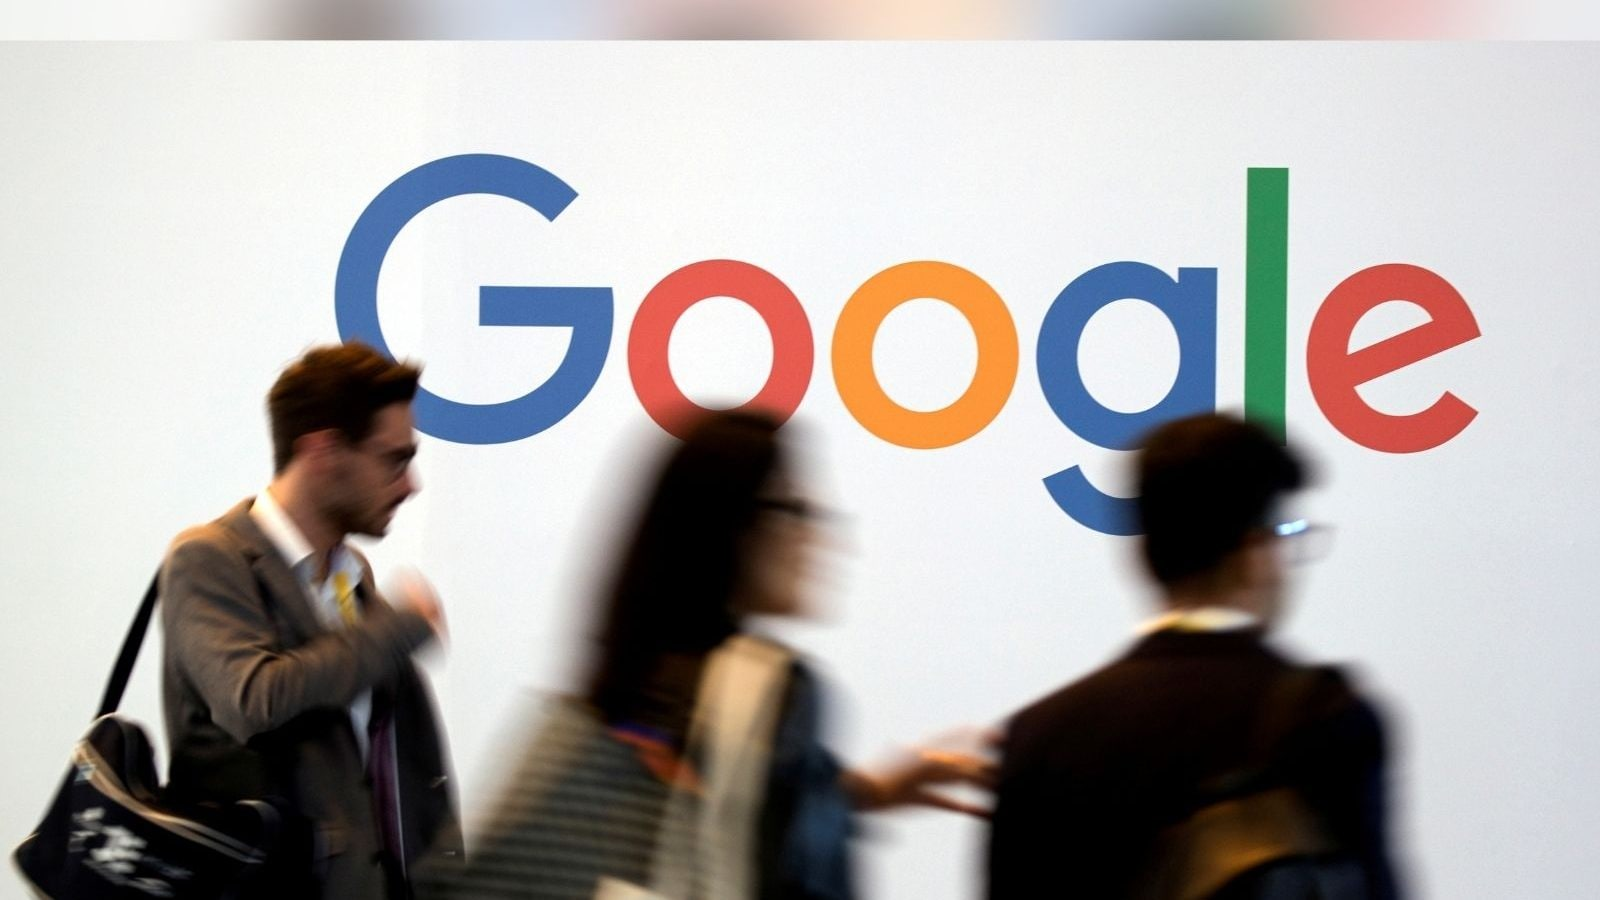 Google Extends Work From Home Till Next Year; CEO Says Road Ahead Bumpier Than Expected